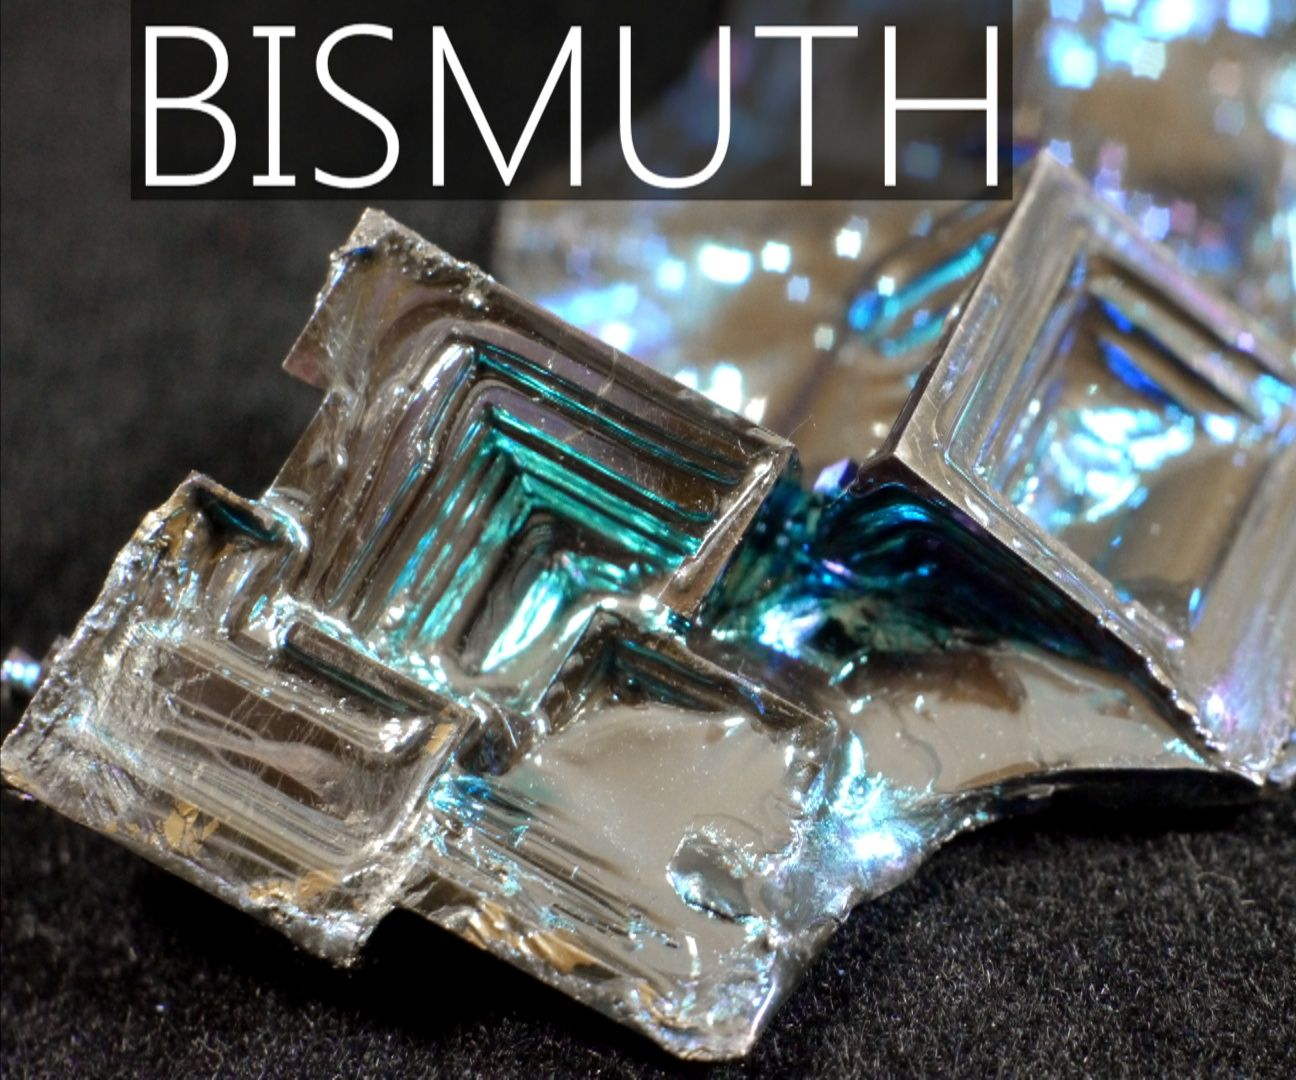 Make Bismuth Crystals In The Kitchen